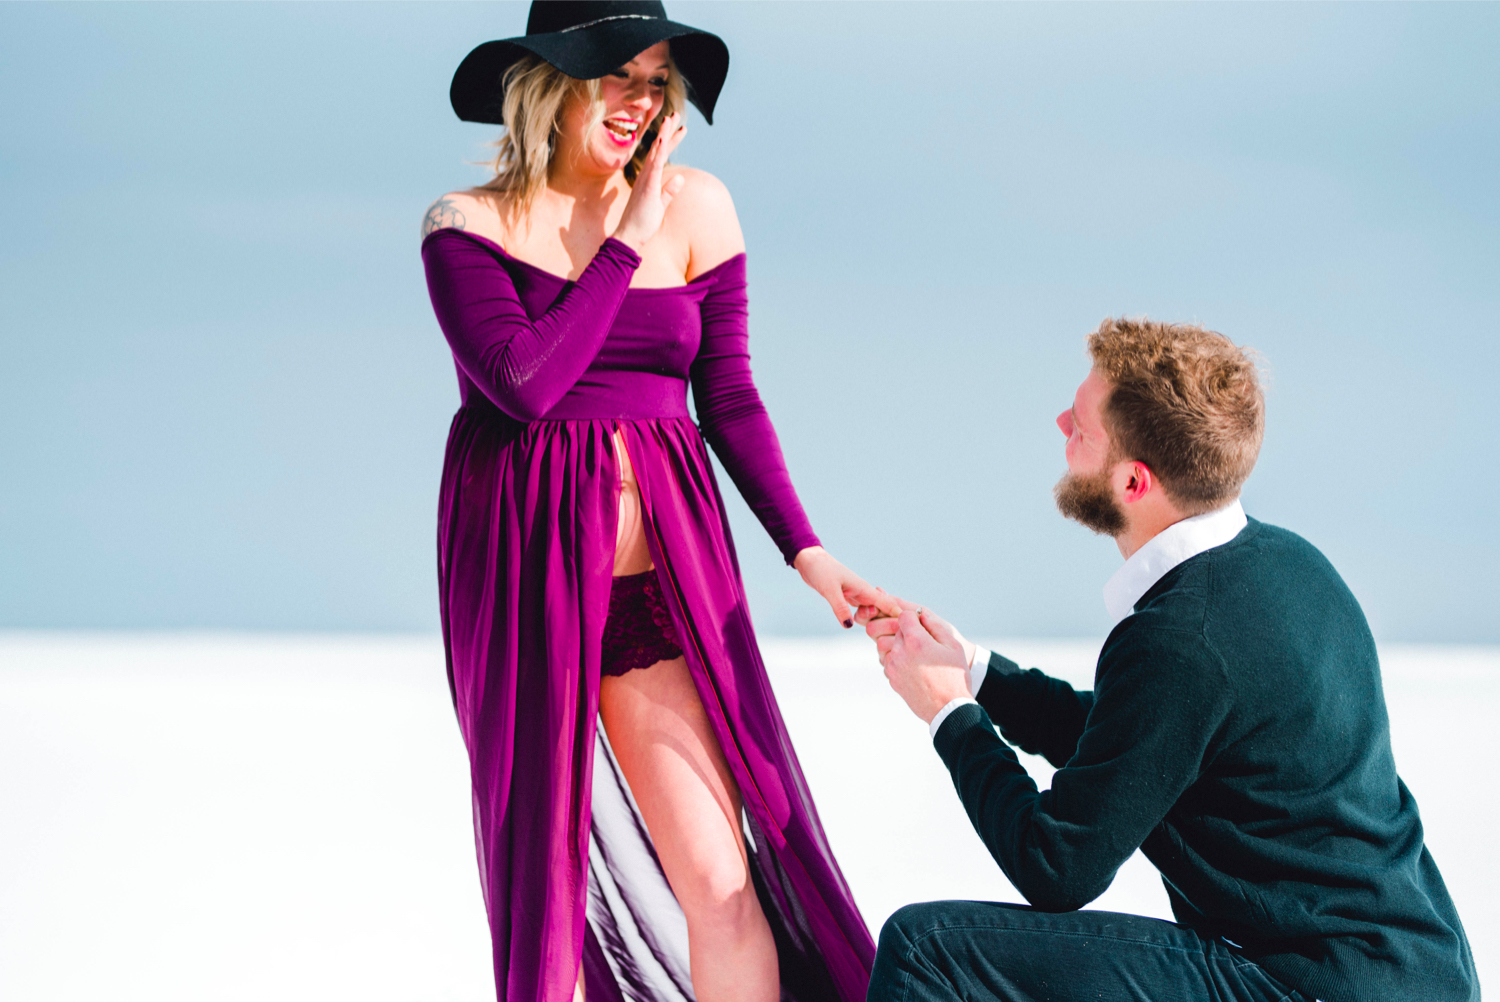 Image 7 of Maternity Shoot Turns into Surprise Marriage Proposal